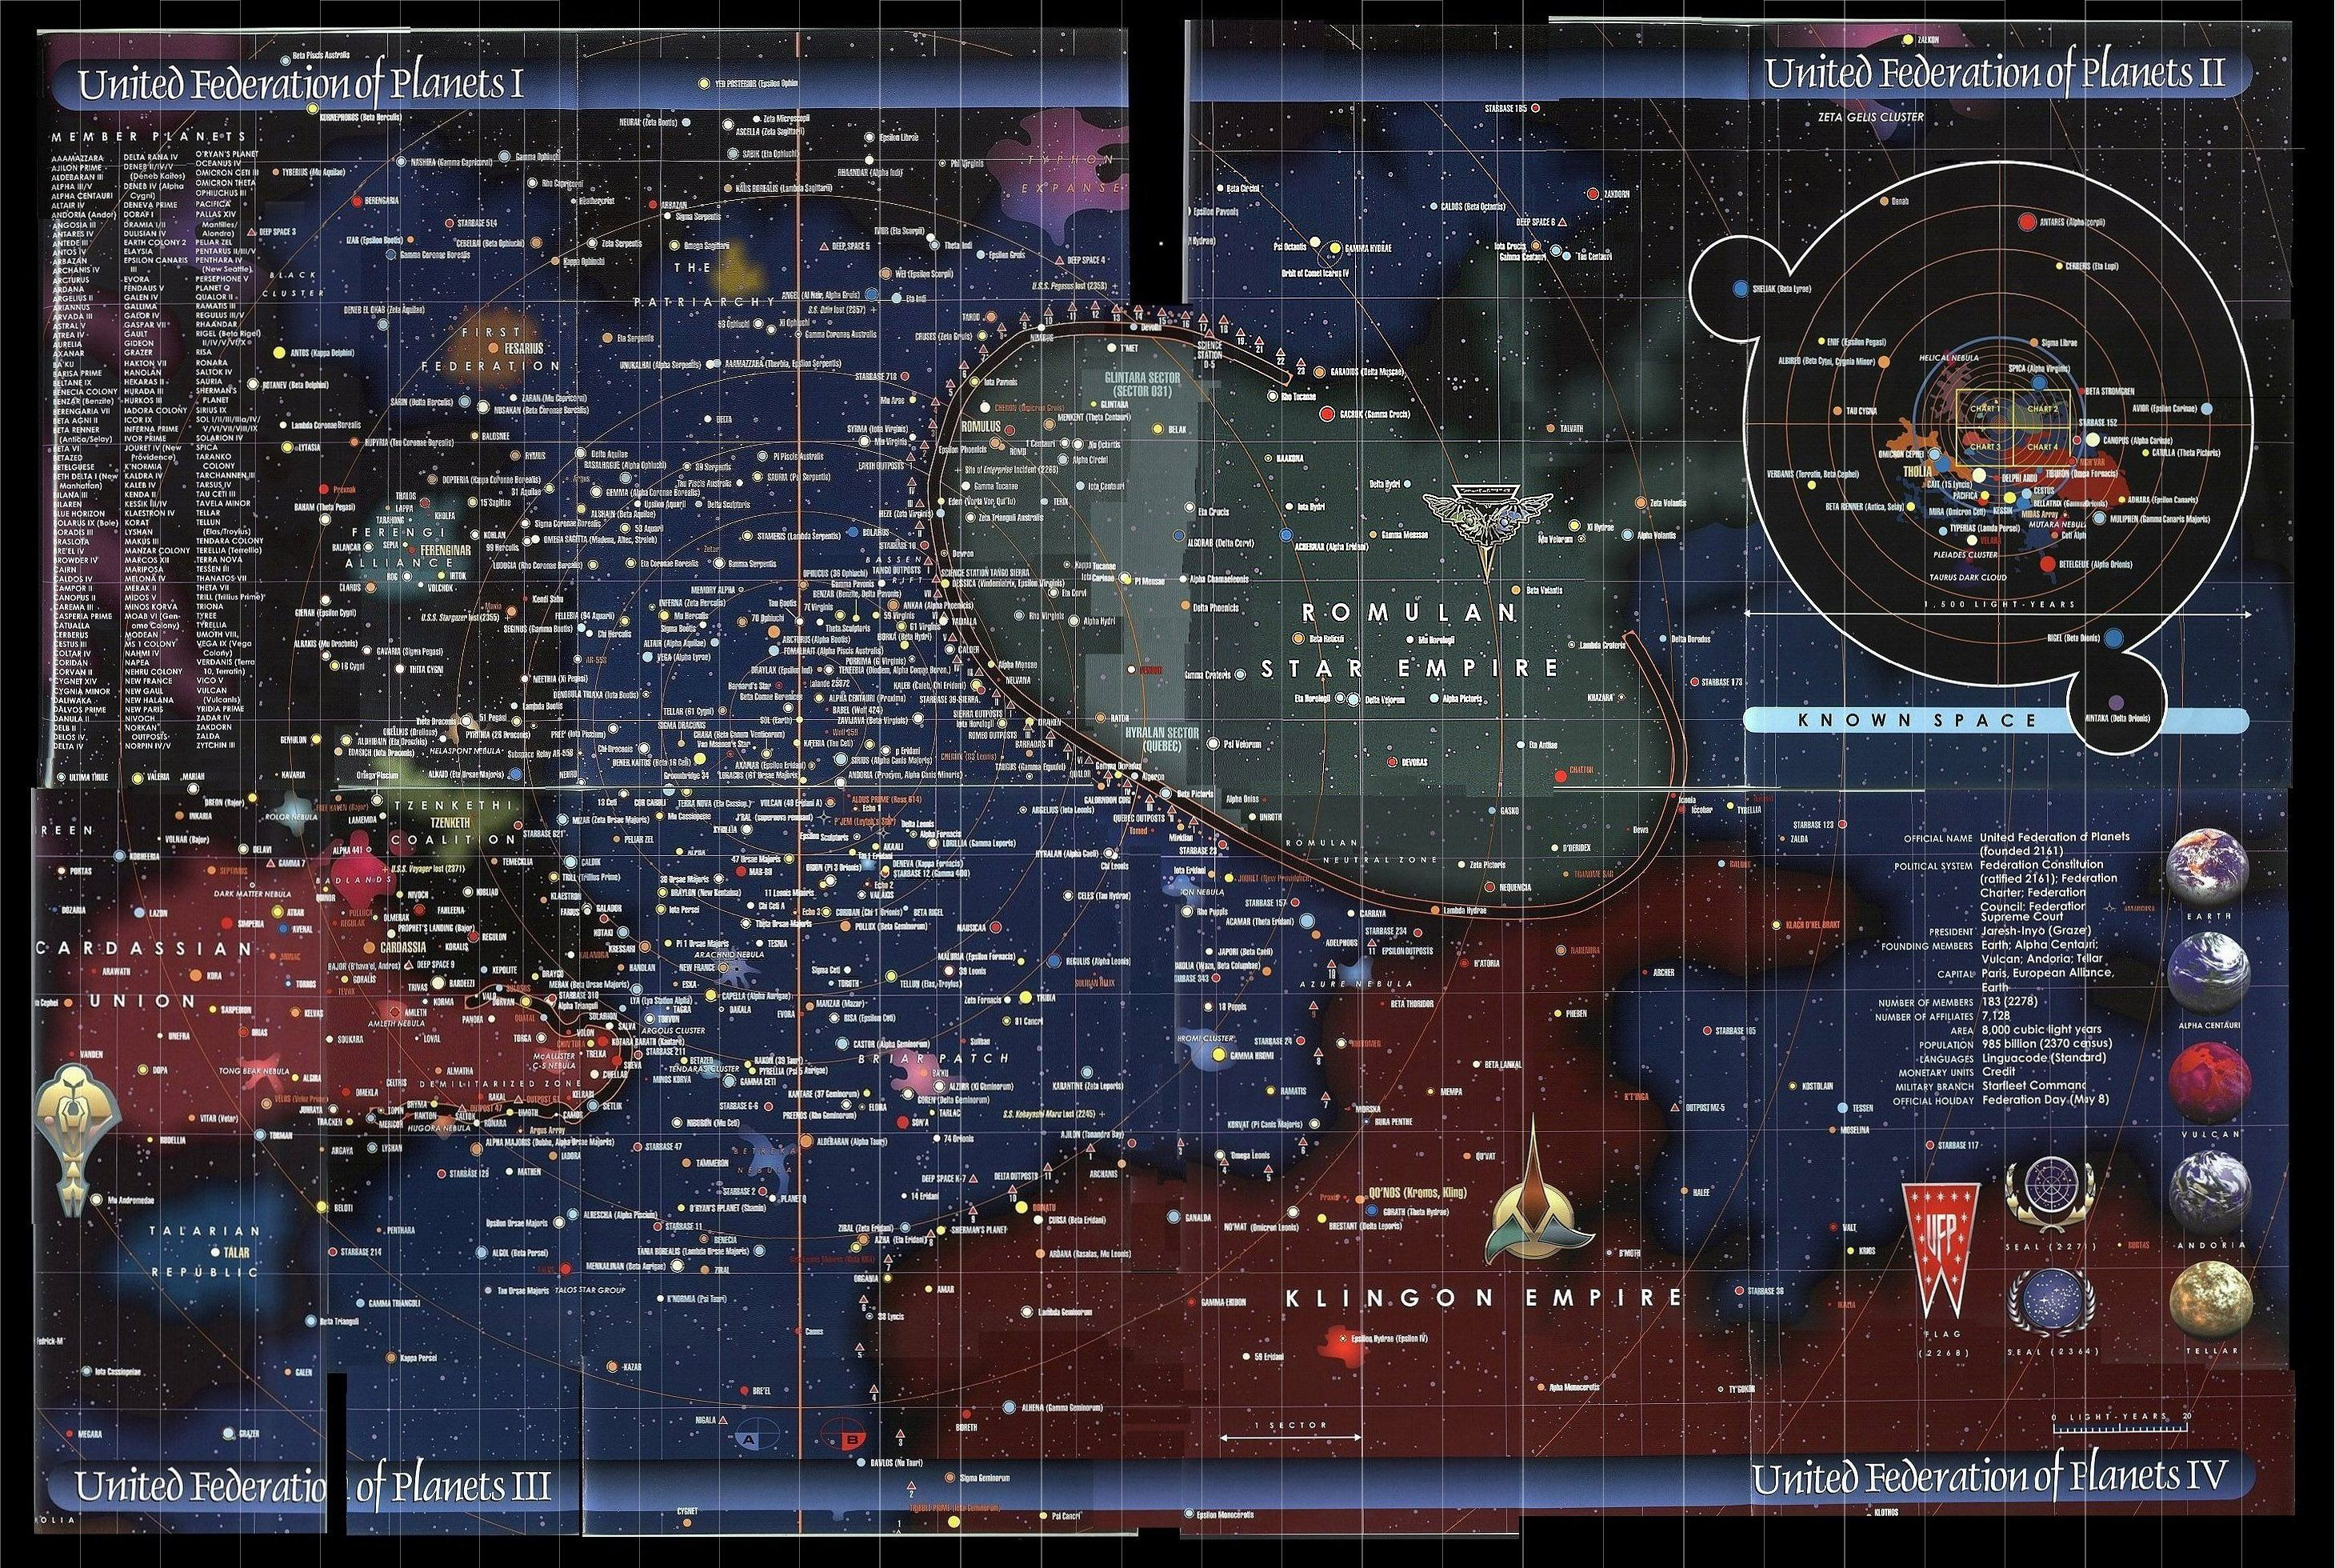 9 Maps of Science Fiction Star Trek United Federation of Planets and Nearby Space